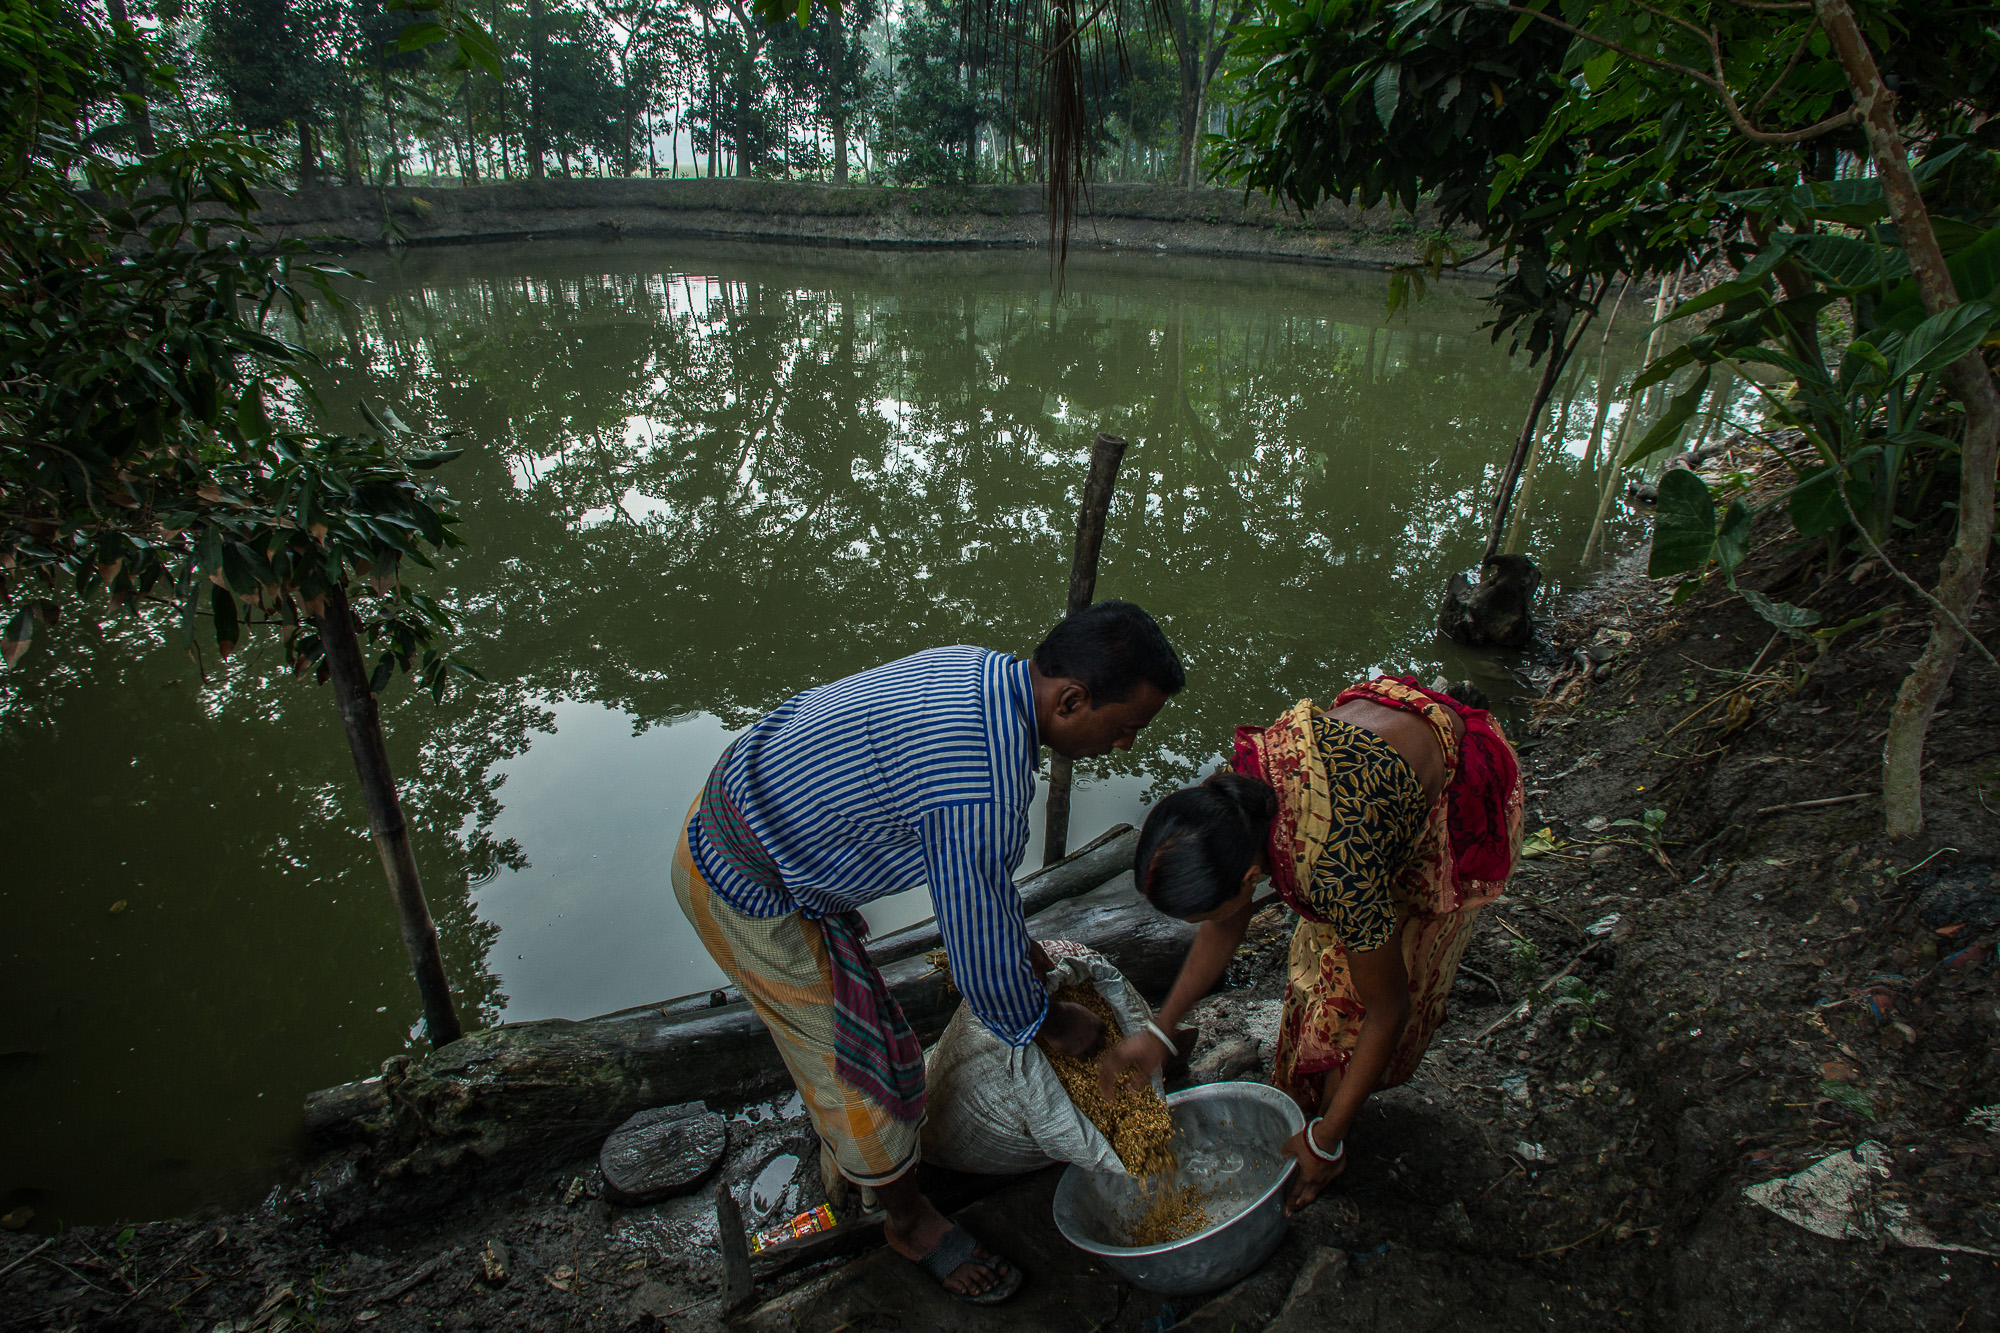 During harvest season, Taroni and his wife soak the rice they have harvested in the pond near their house. before boiling it and then laying it out to dry.